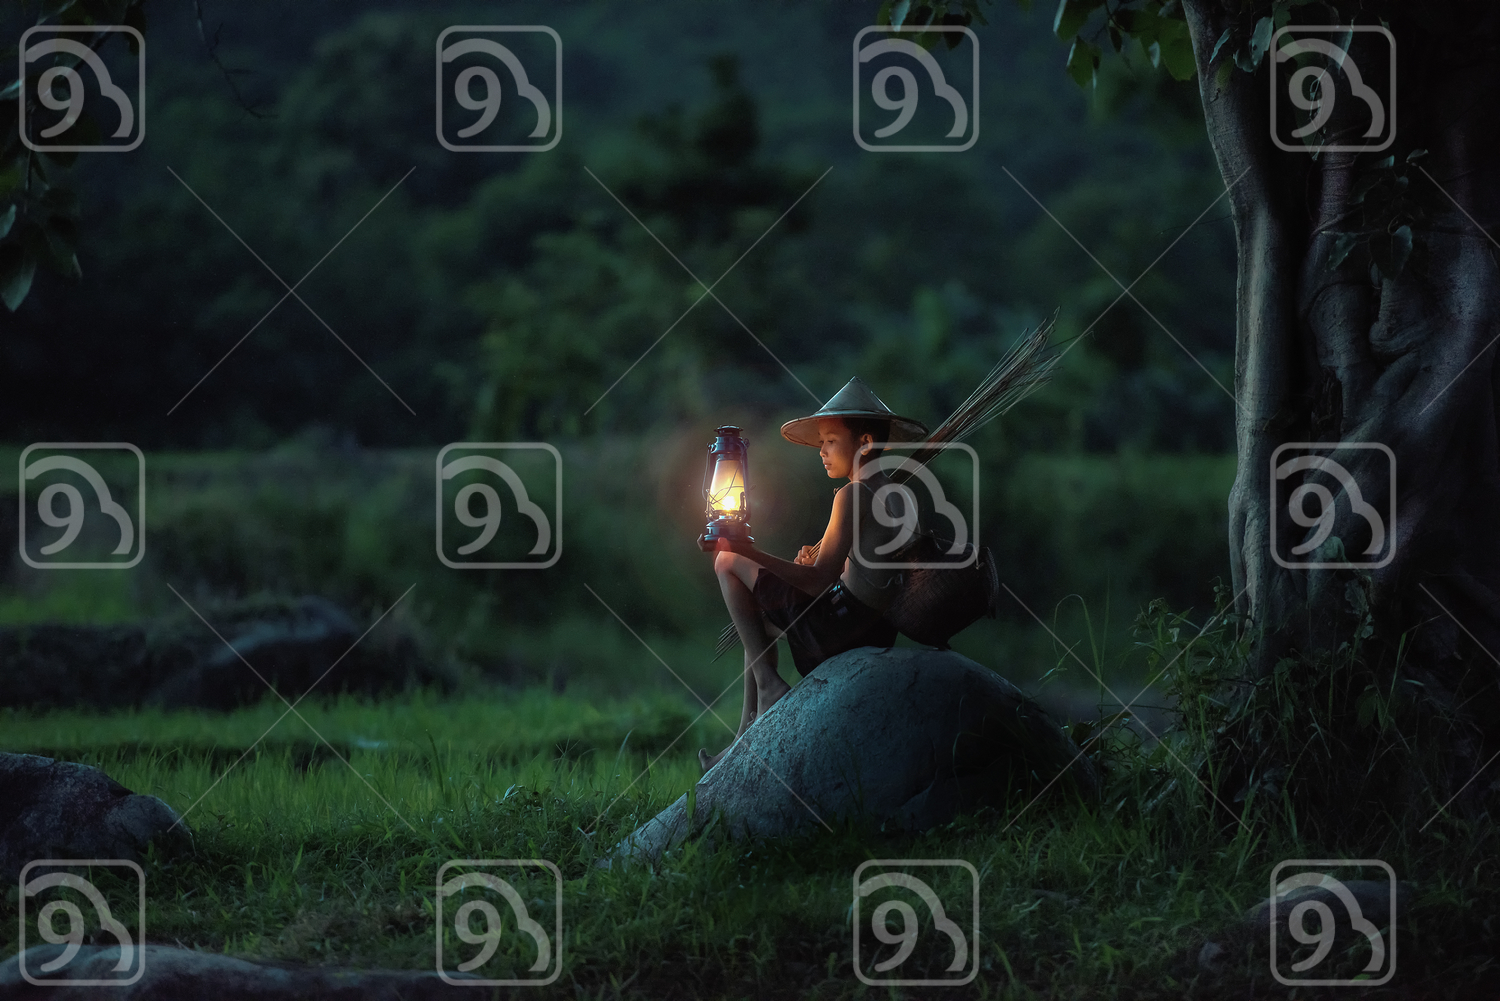 Boy fishing with lantern